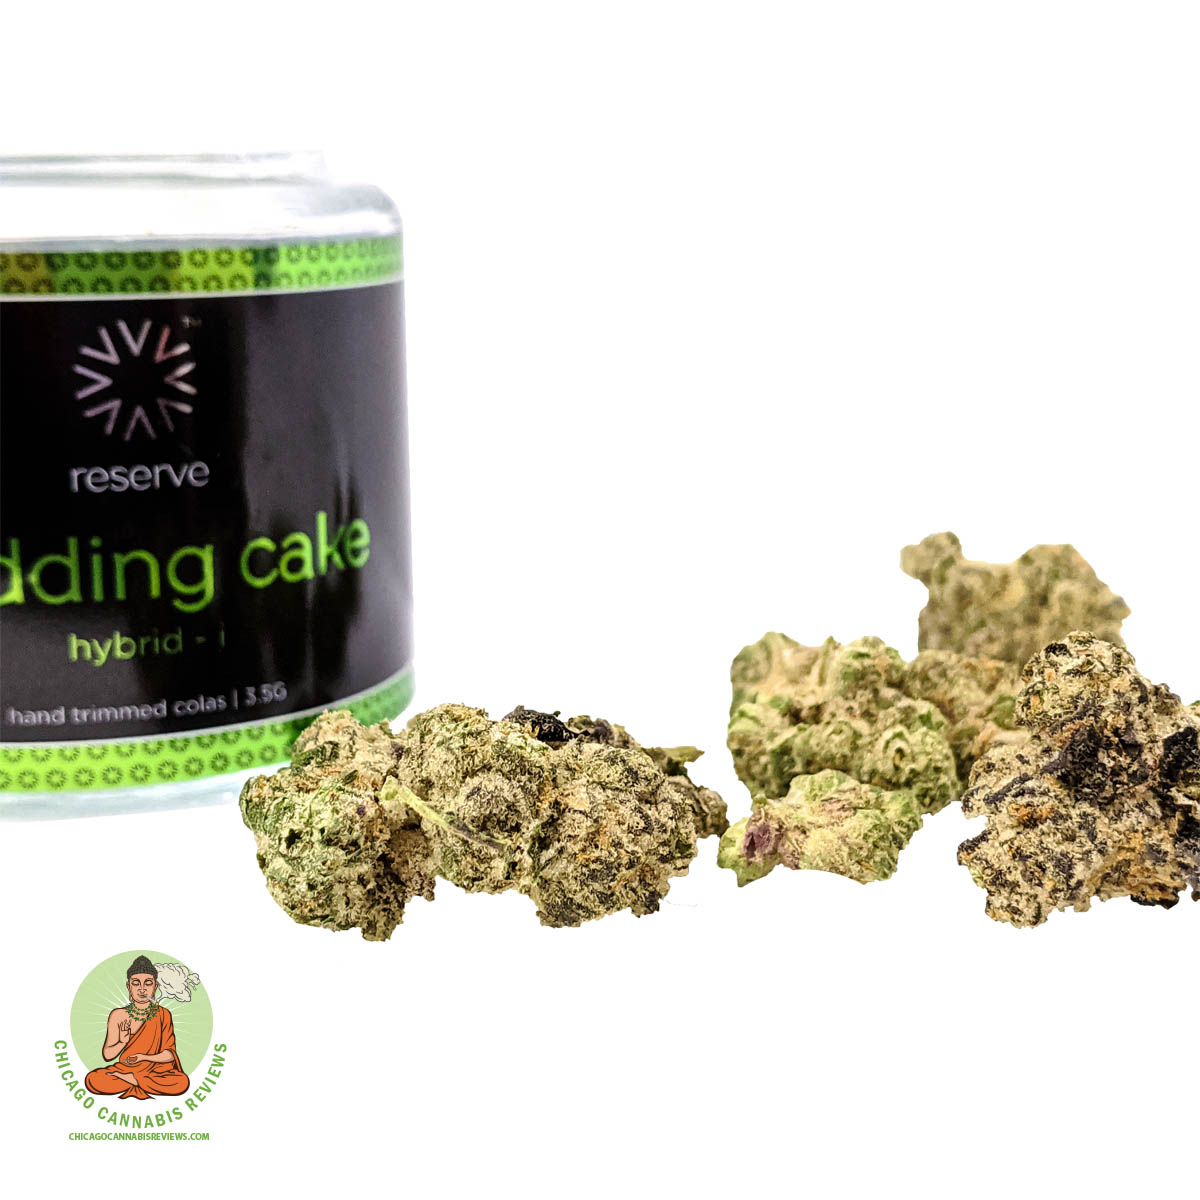 Verano Wedding Cake Review Sunnyside Dispensary March 2020